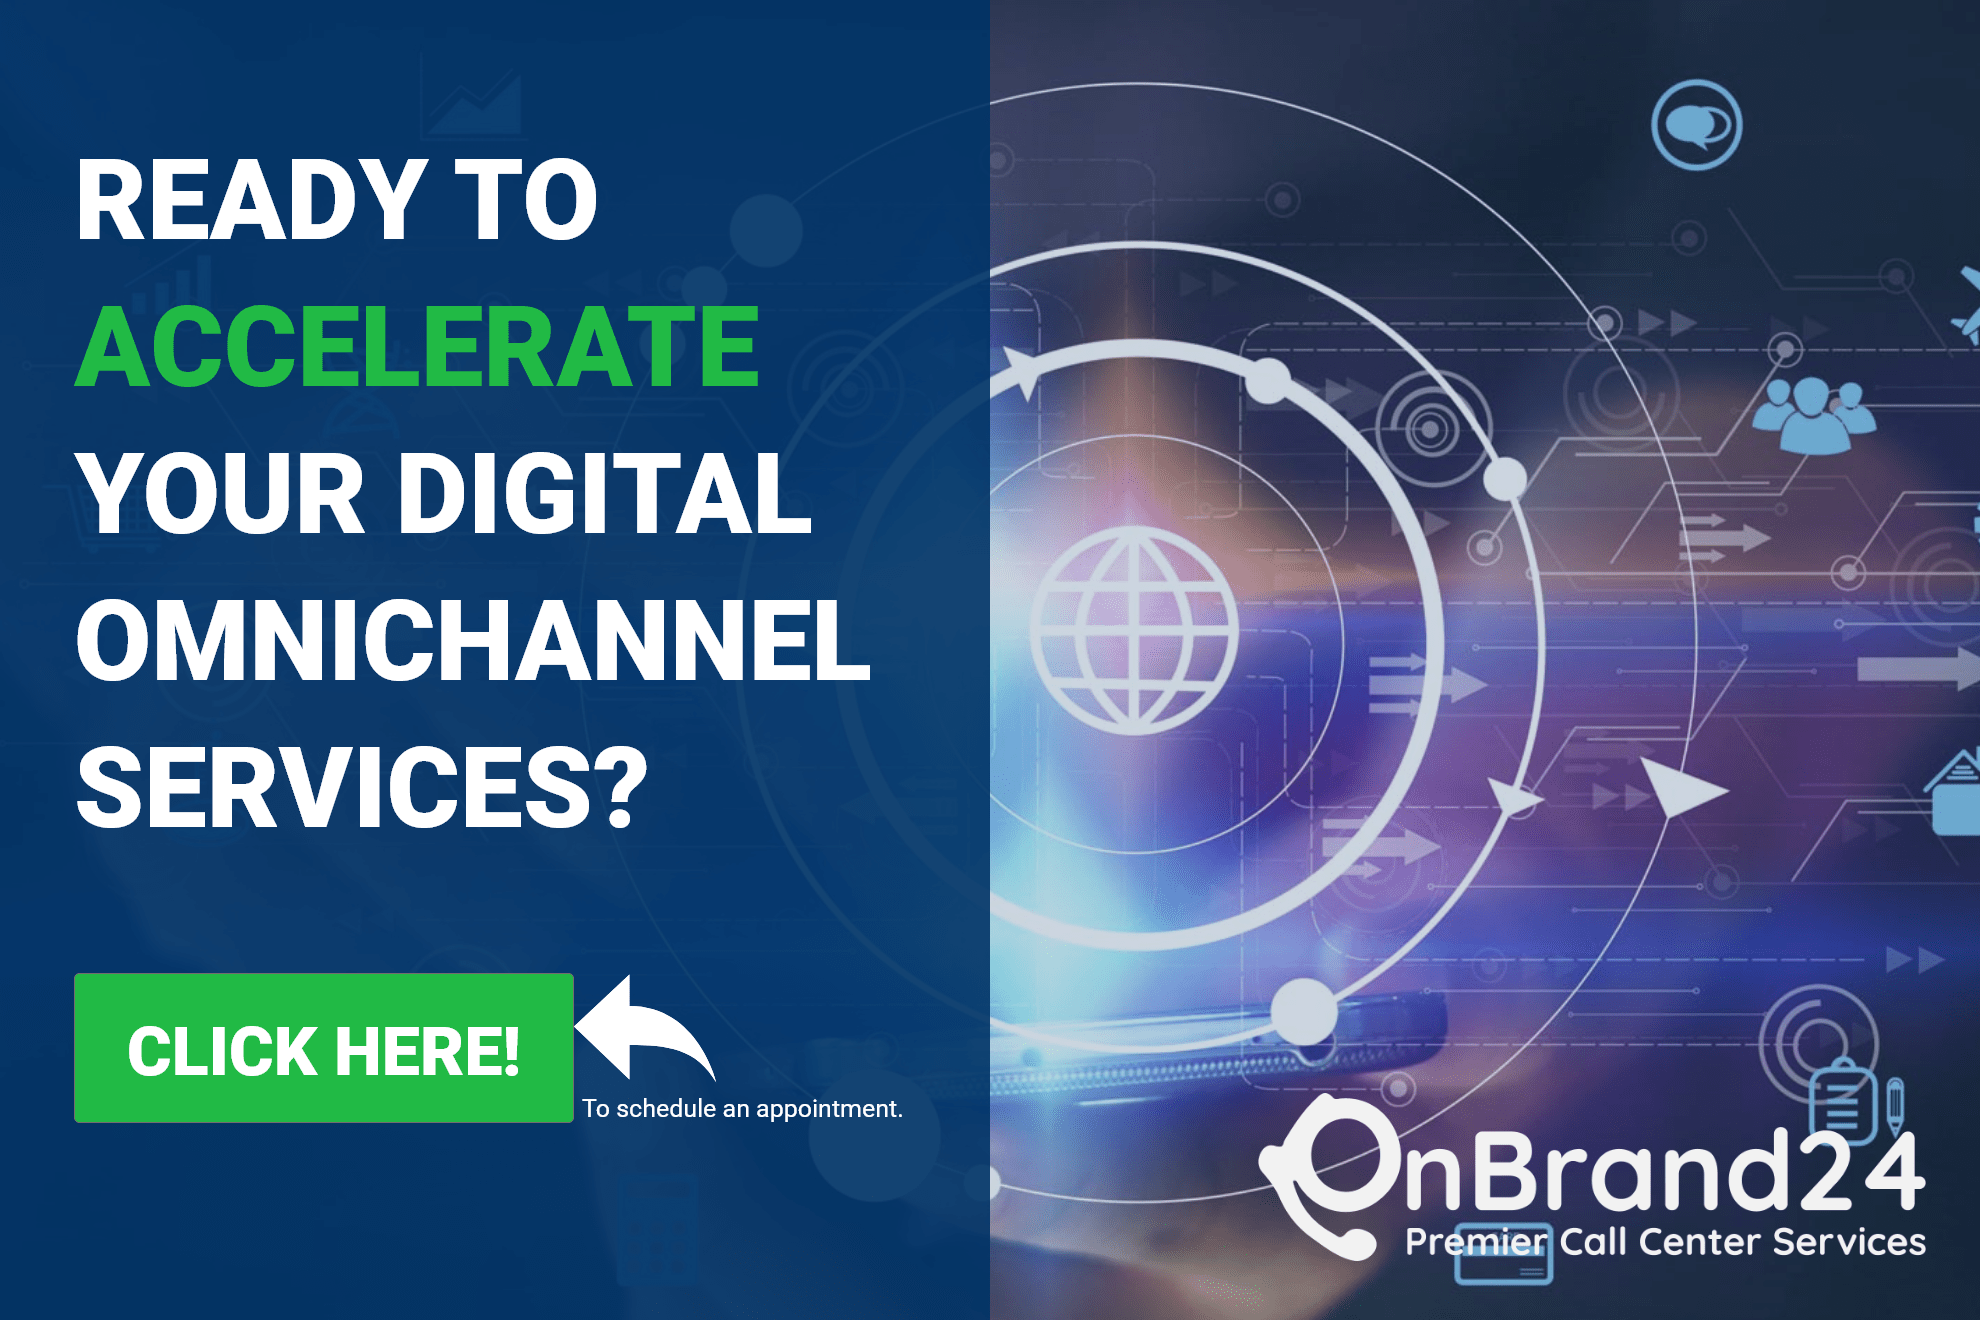 OnBrand24 Omnichannel Call Center Service Provider